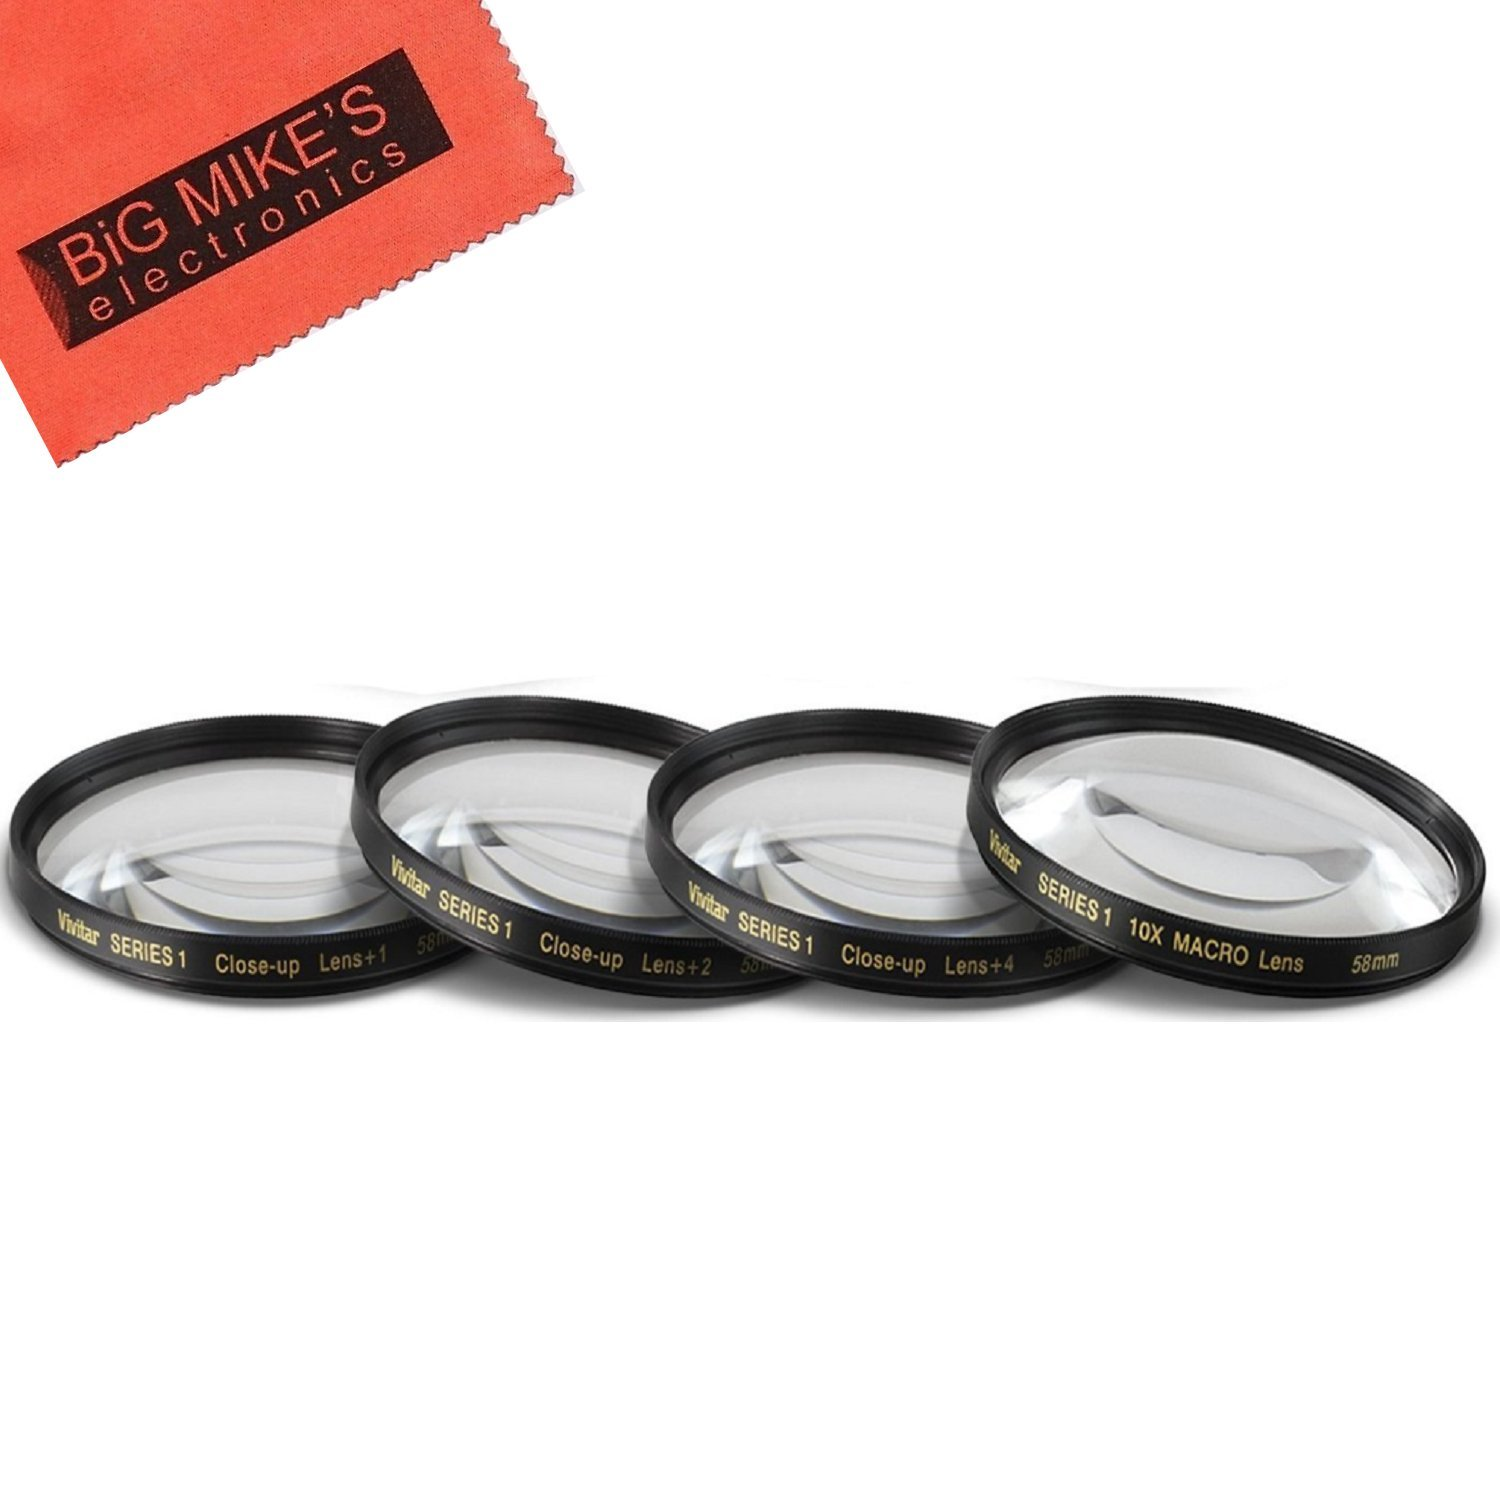 58mm Close-Up Filter Set (+1, 2, 4 and +10 Diopters) Magnificatoin Kit for Select Canon, Nikon, Sony, FujiFilm, Olympus, Pentax, Sigma, Tamron Digital Cameras and Camcorders by Big Mike's